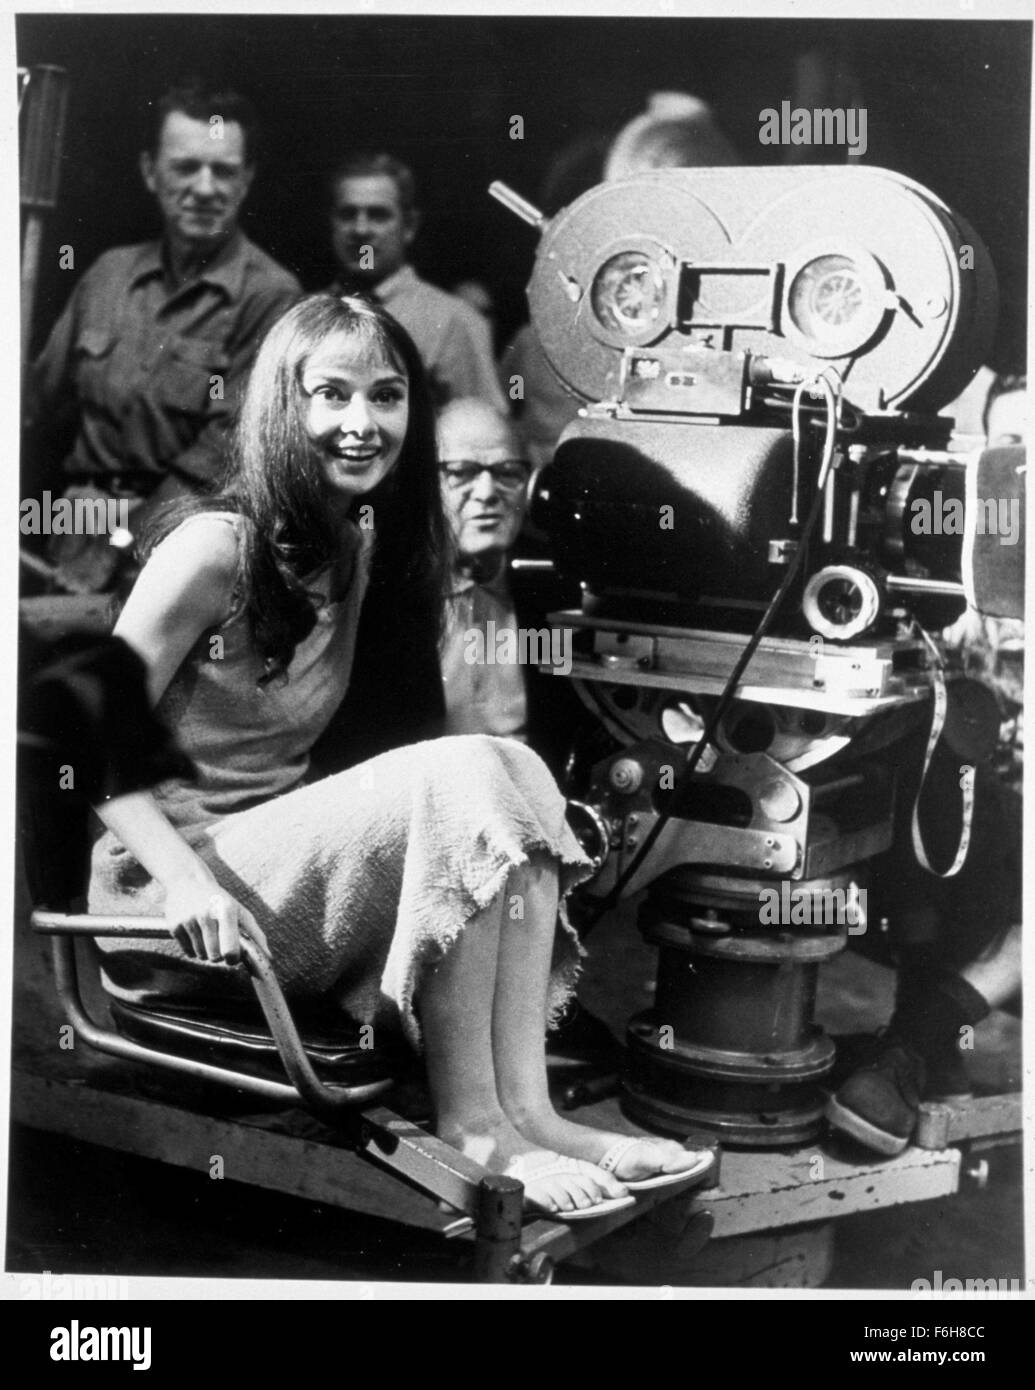 1959, Film Title: GREEN MANSIONS, Director: MEL FERRER, Pictured: 1959, BEHIND THE SCENES, HAIR - LONG, AUDREY HEPBURN, - Stock Image